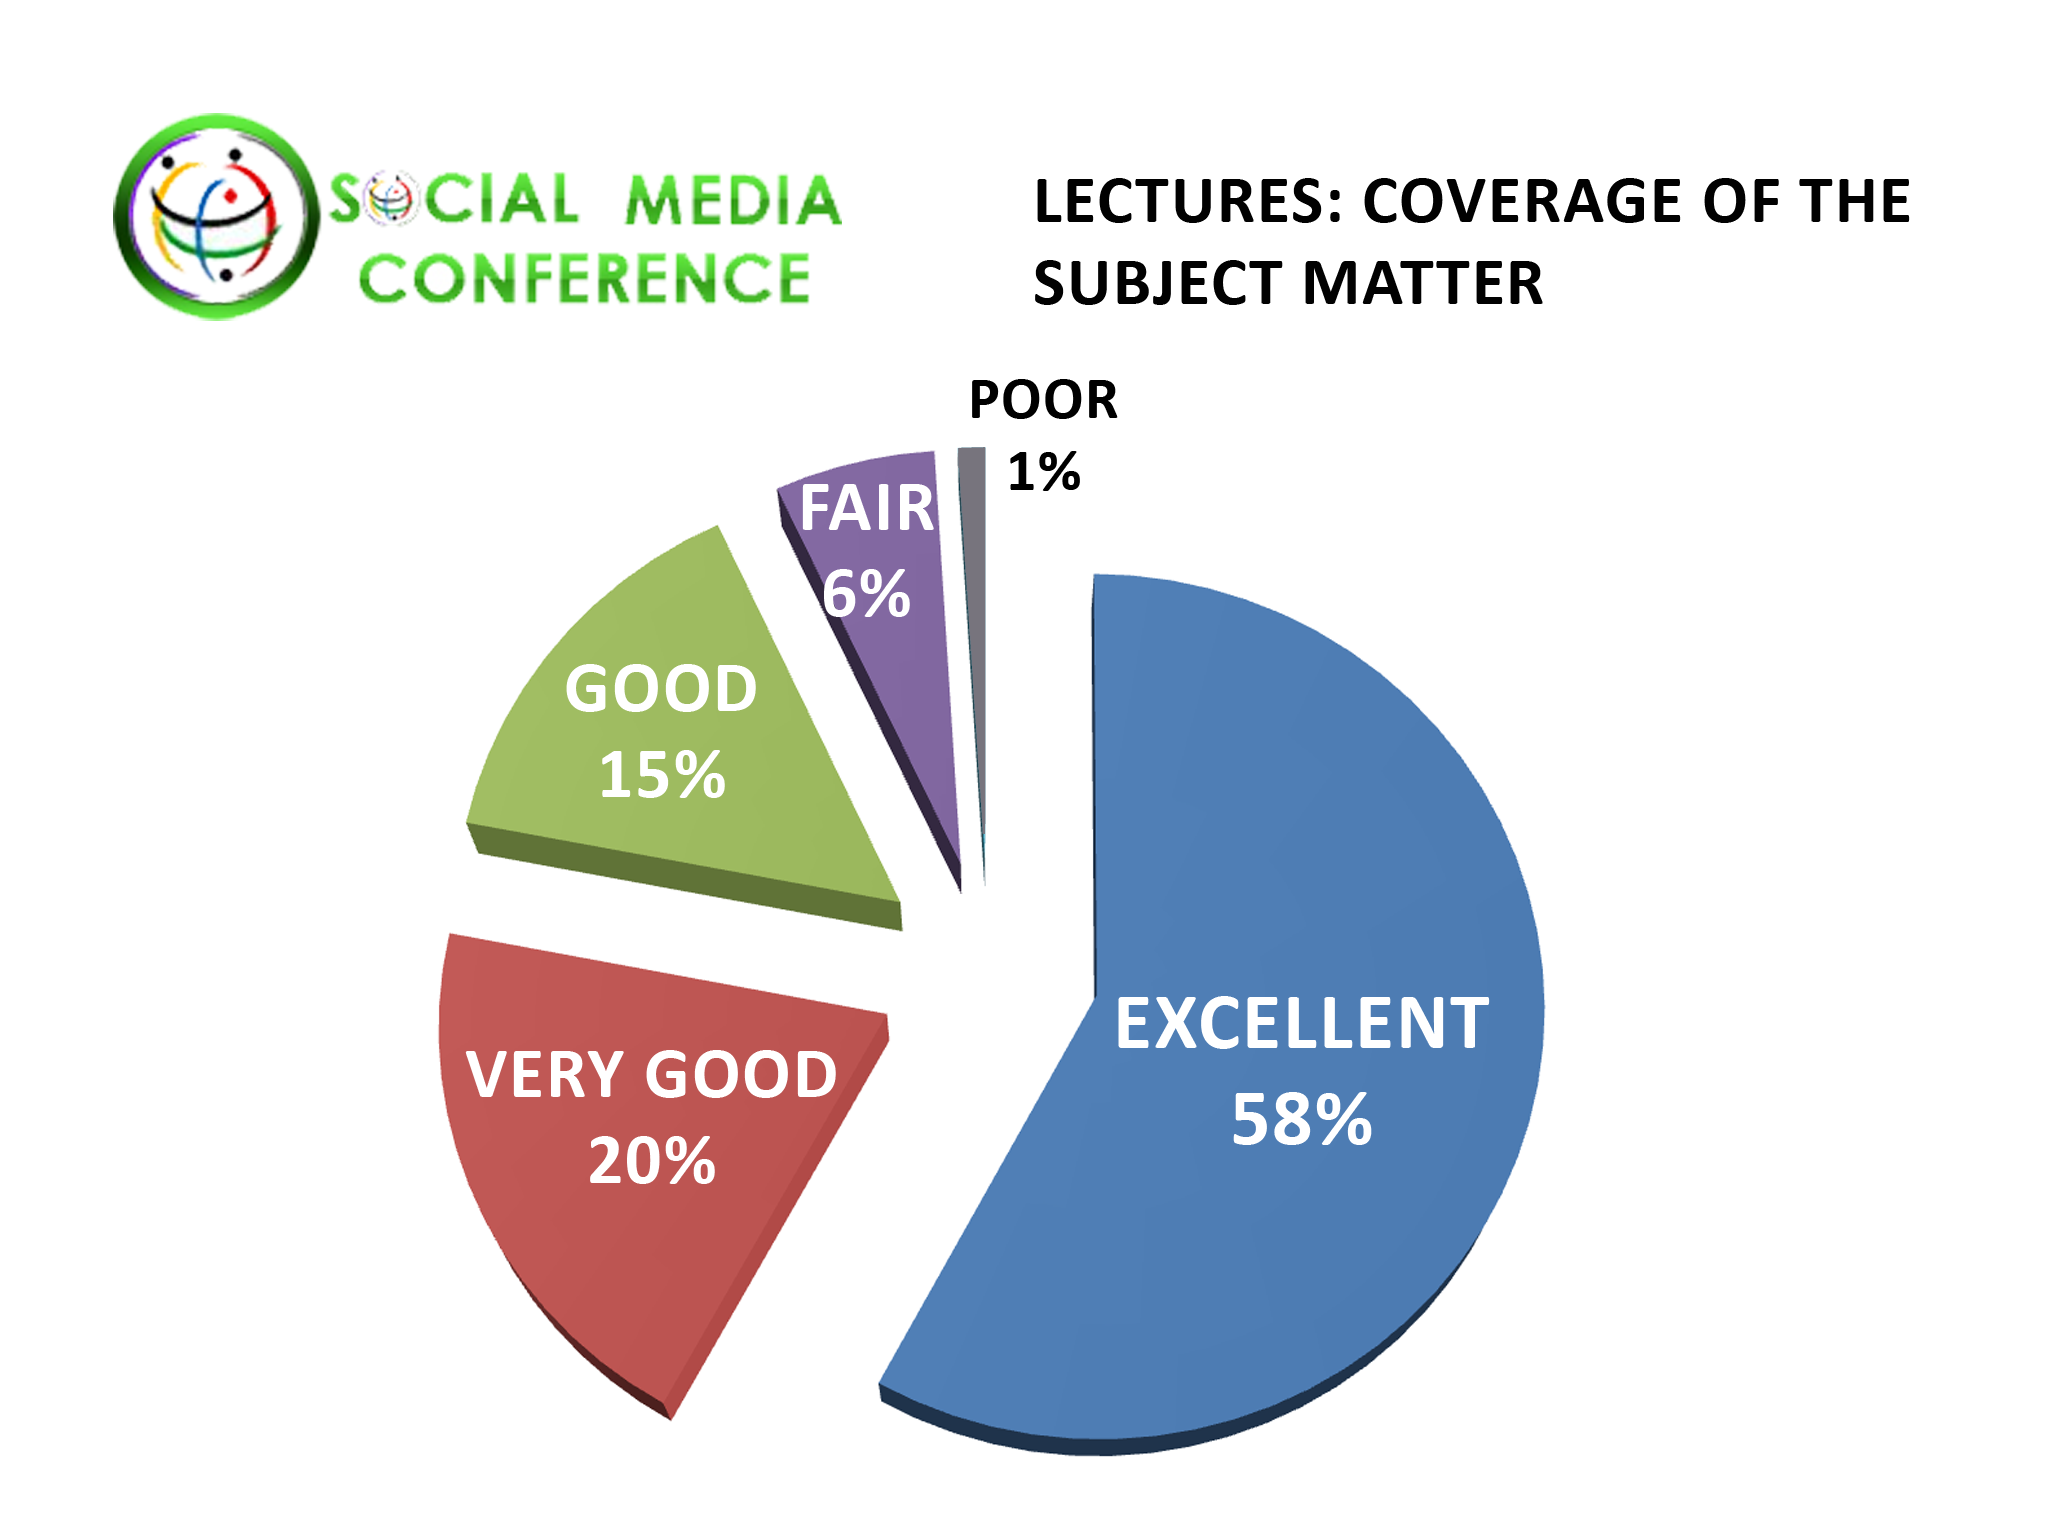 Social Networking Conference January 2012 Lecture Statistics Dating Industry Coverage of the Subject Matter